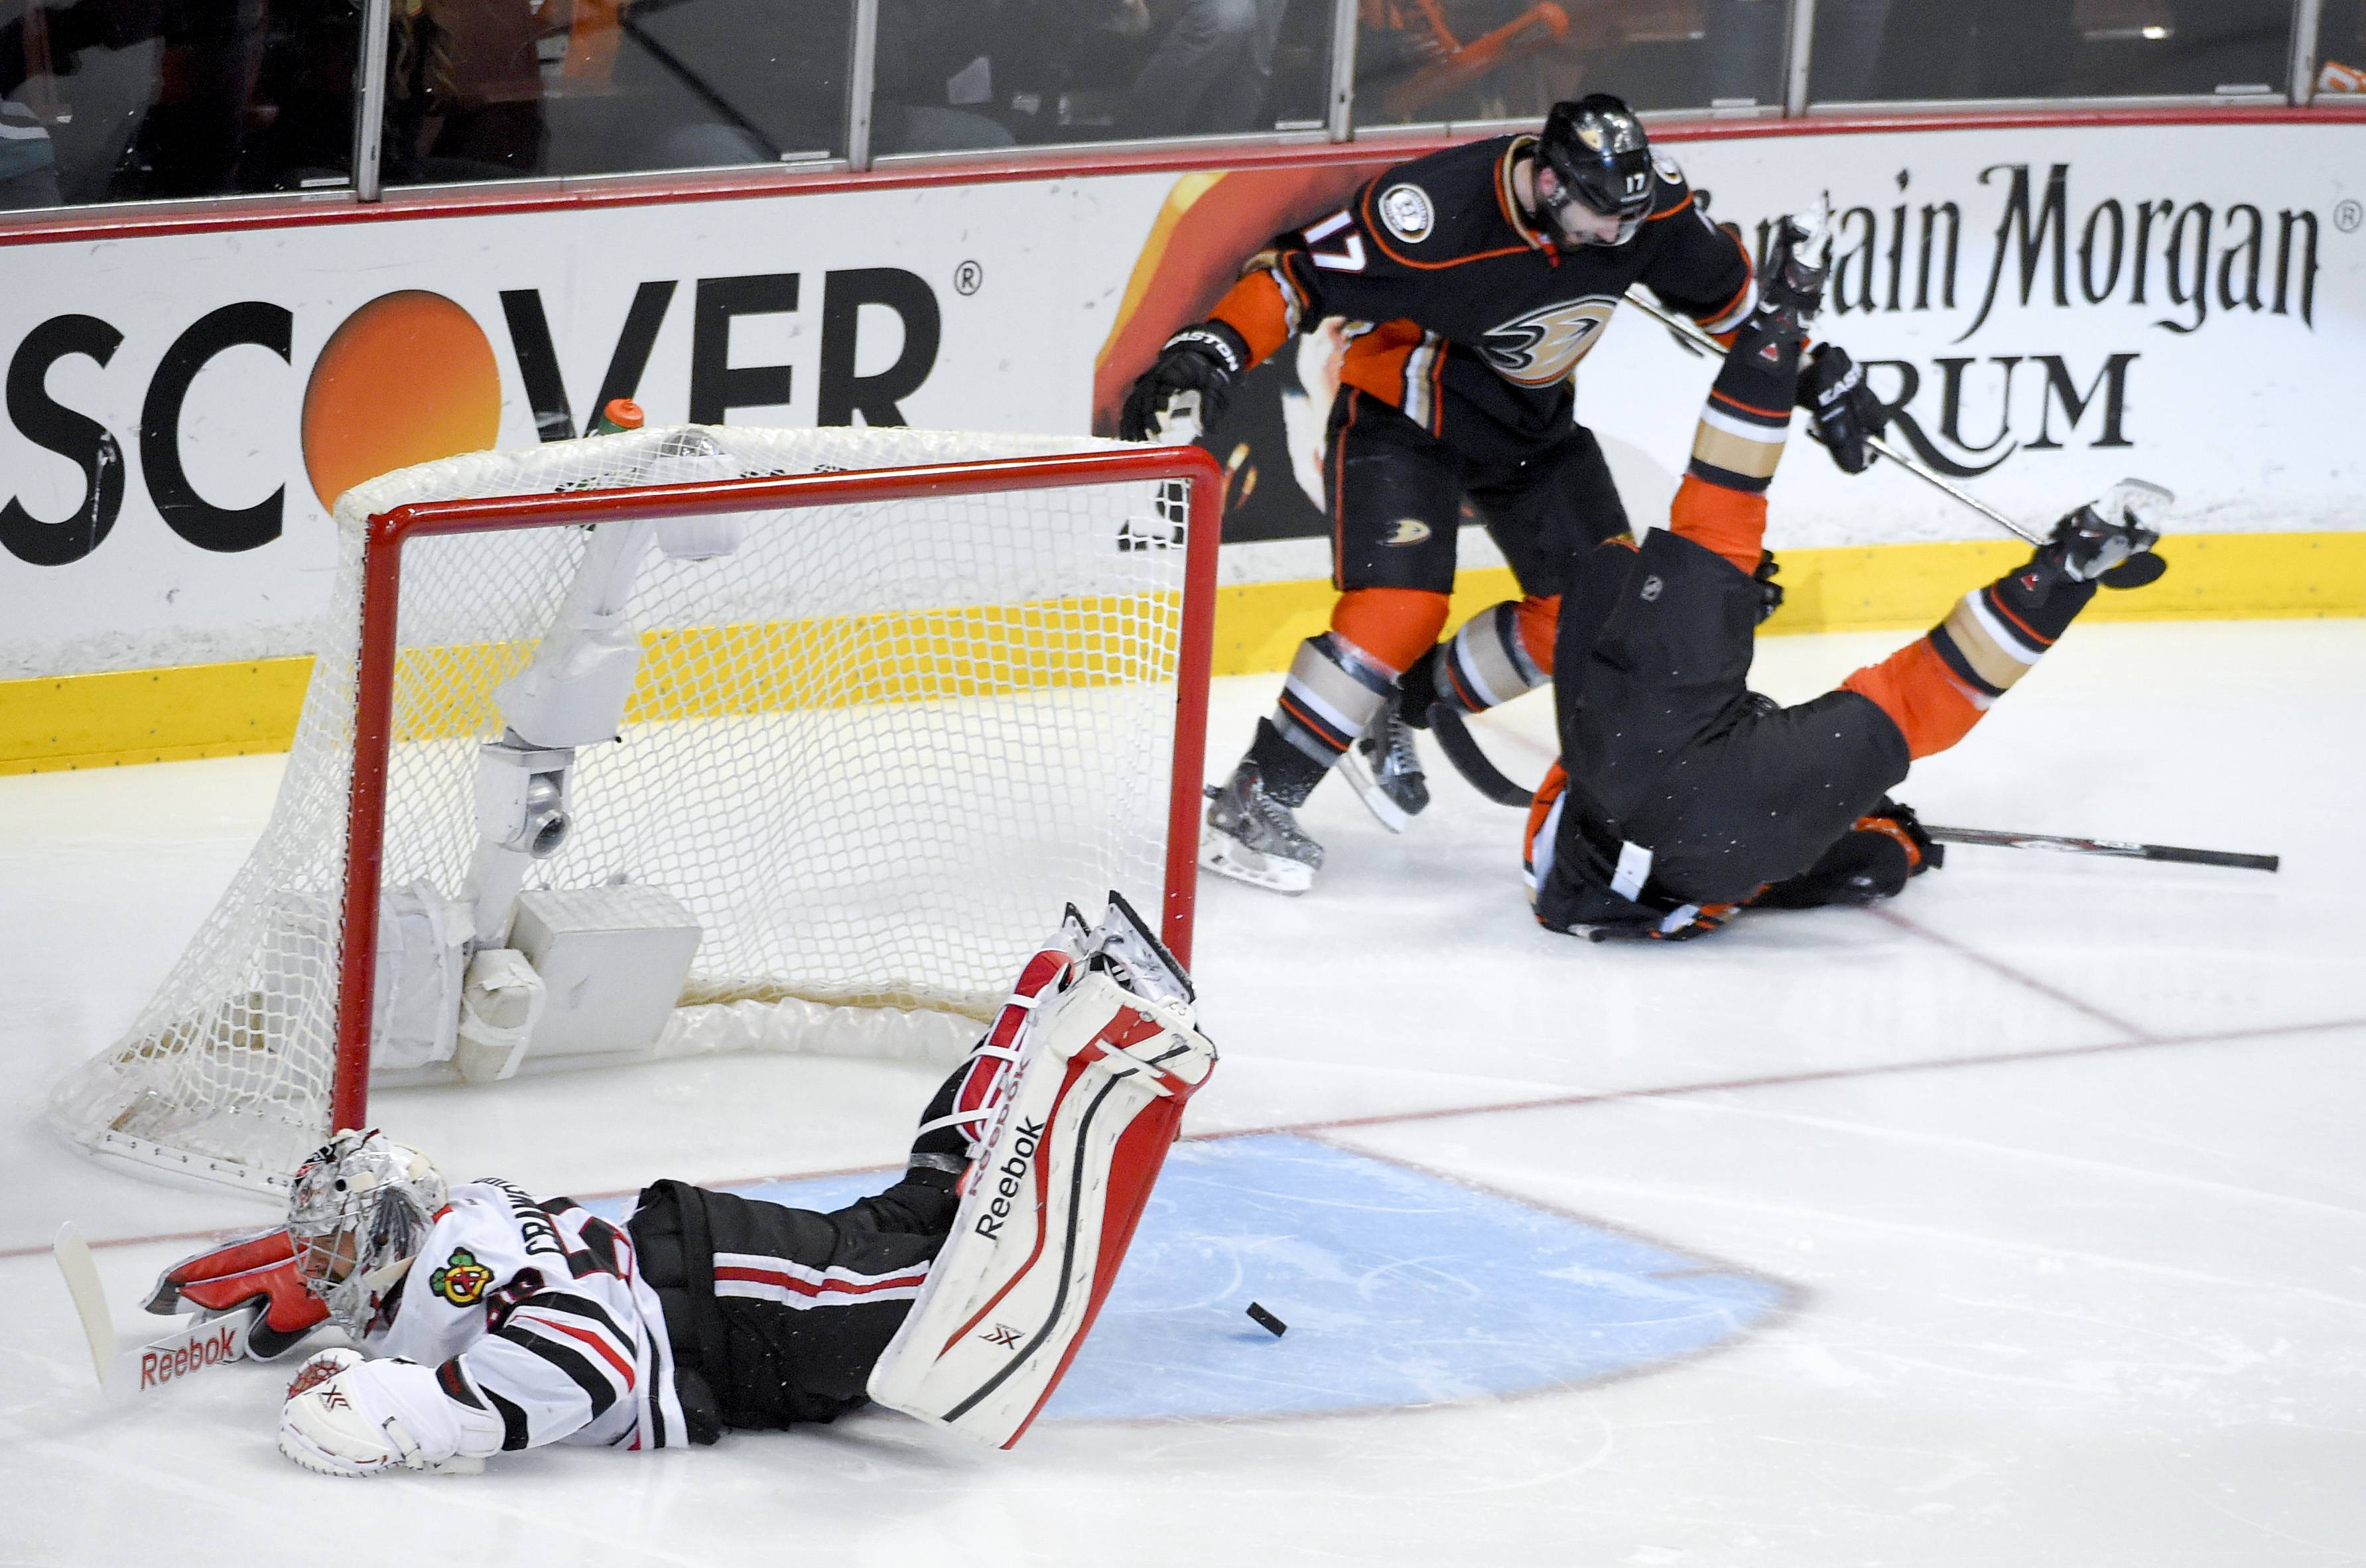 Anaheim Ducks left wing Matt Beleskey right, celebrates with Ryan Kesler after scoring the game winning goal past Chicago Blackhawks goalie Corey Crawford, left, during overtime in Game 5 of the Western Conference final of the NHL hockey Stanley Cup playoffs in Anaheim, Calif., on Monday, May 25, 2015.